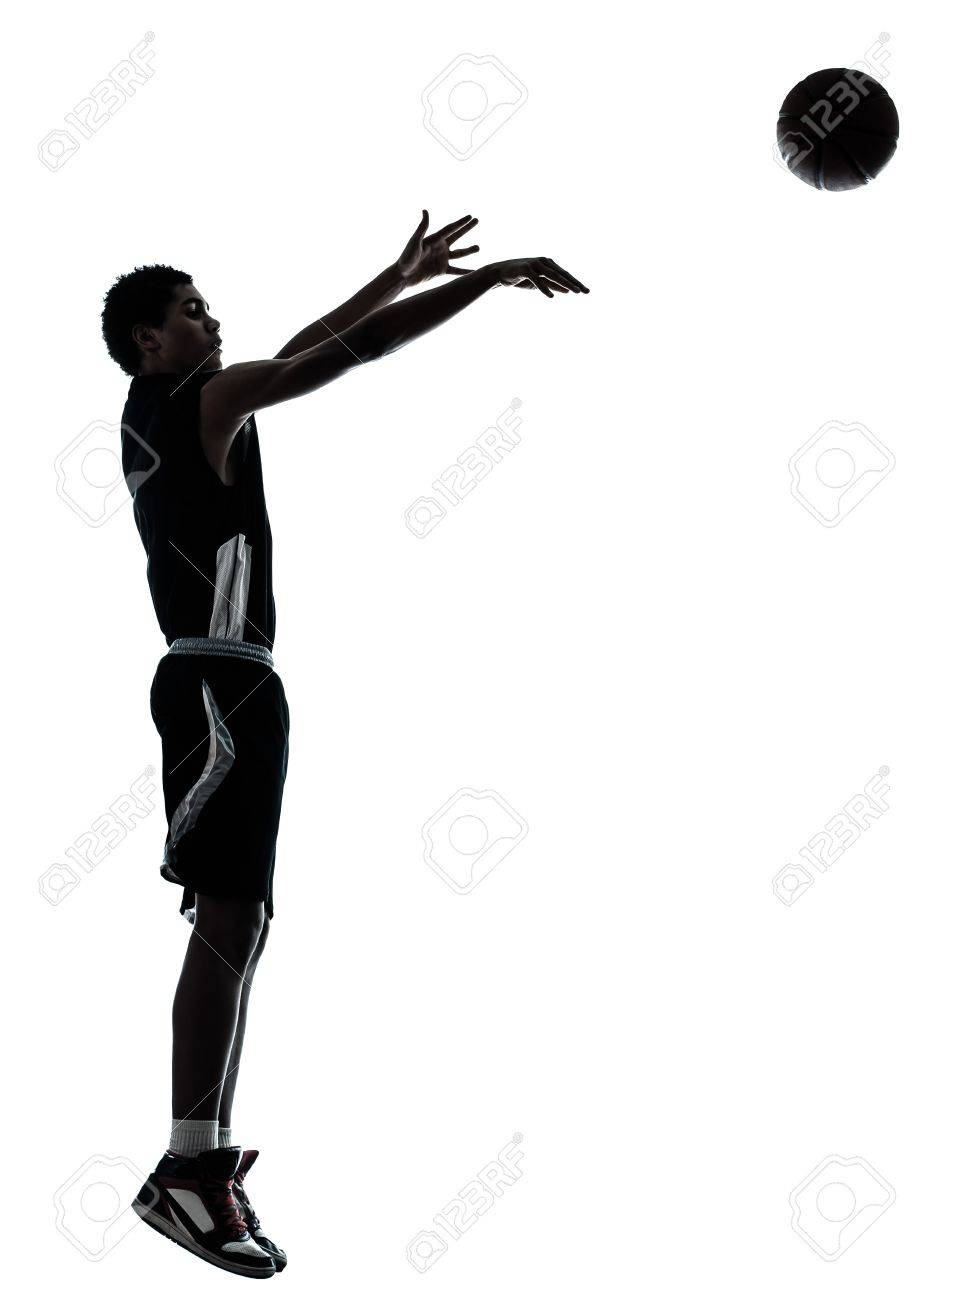 one young man basketball player silhouette in studio isolated on white background Stock Photo - 14402765